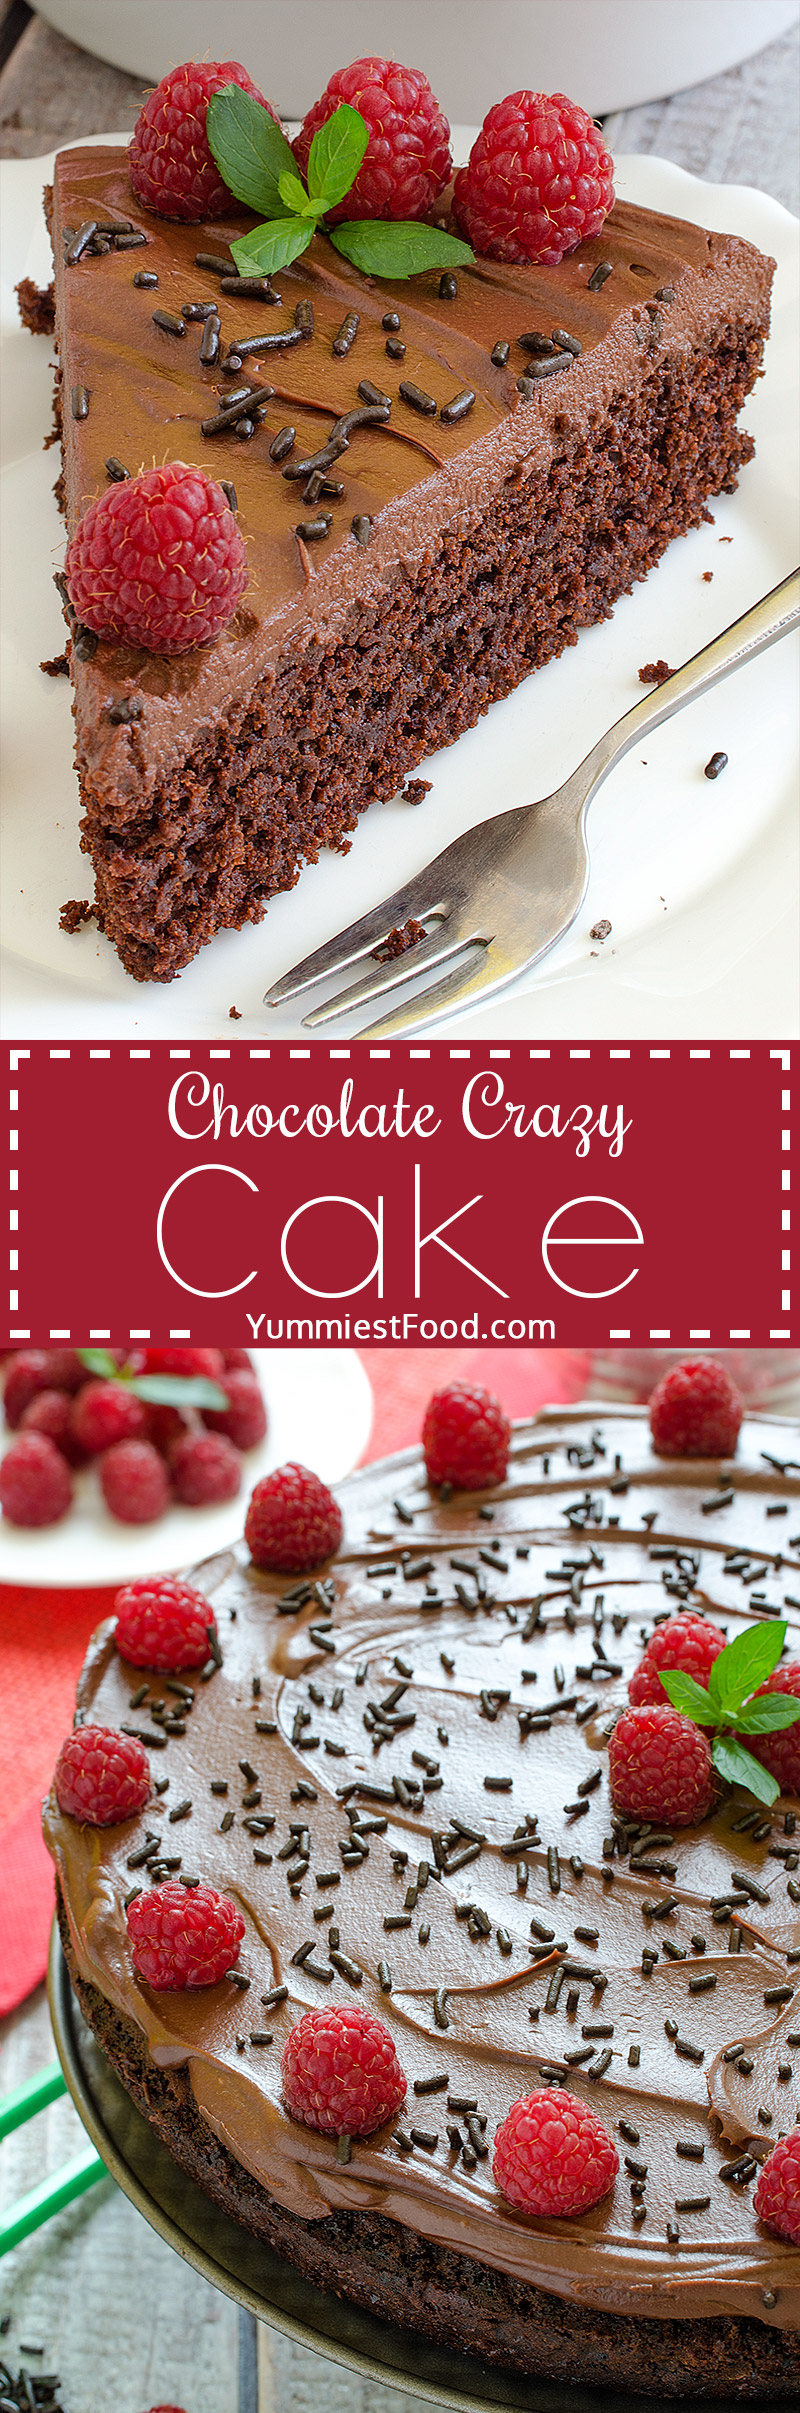 Chocolate Crazy Cake - Light, moist and fluffy! This Chocolate Crazy Cake is the best ever, very delicious and easy to make.